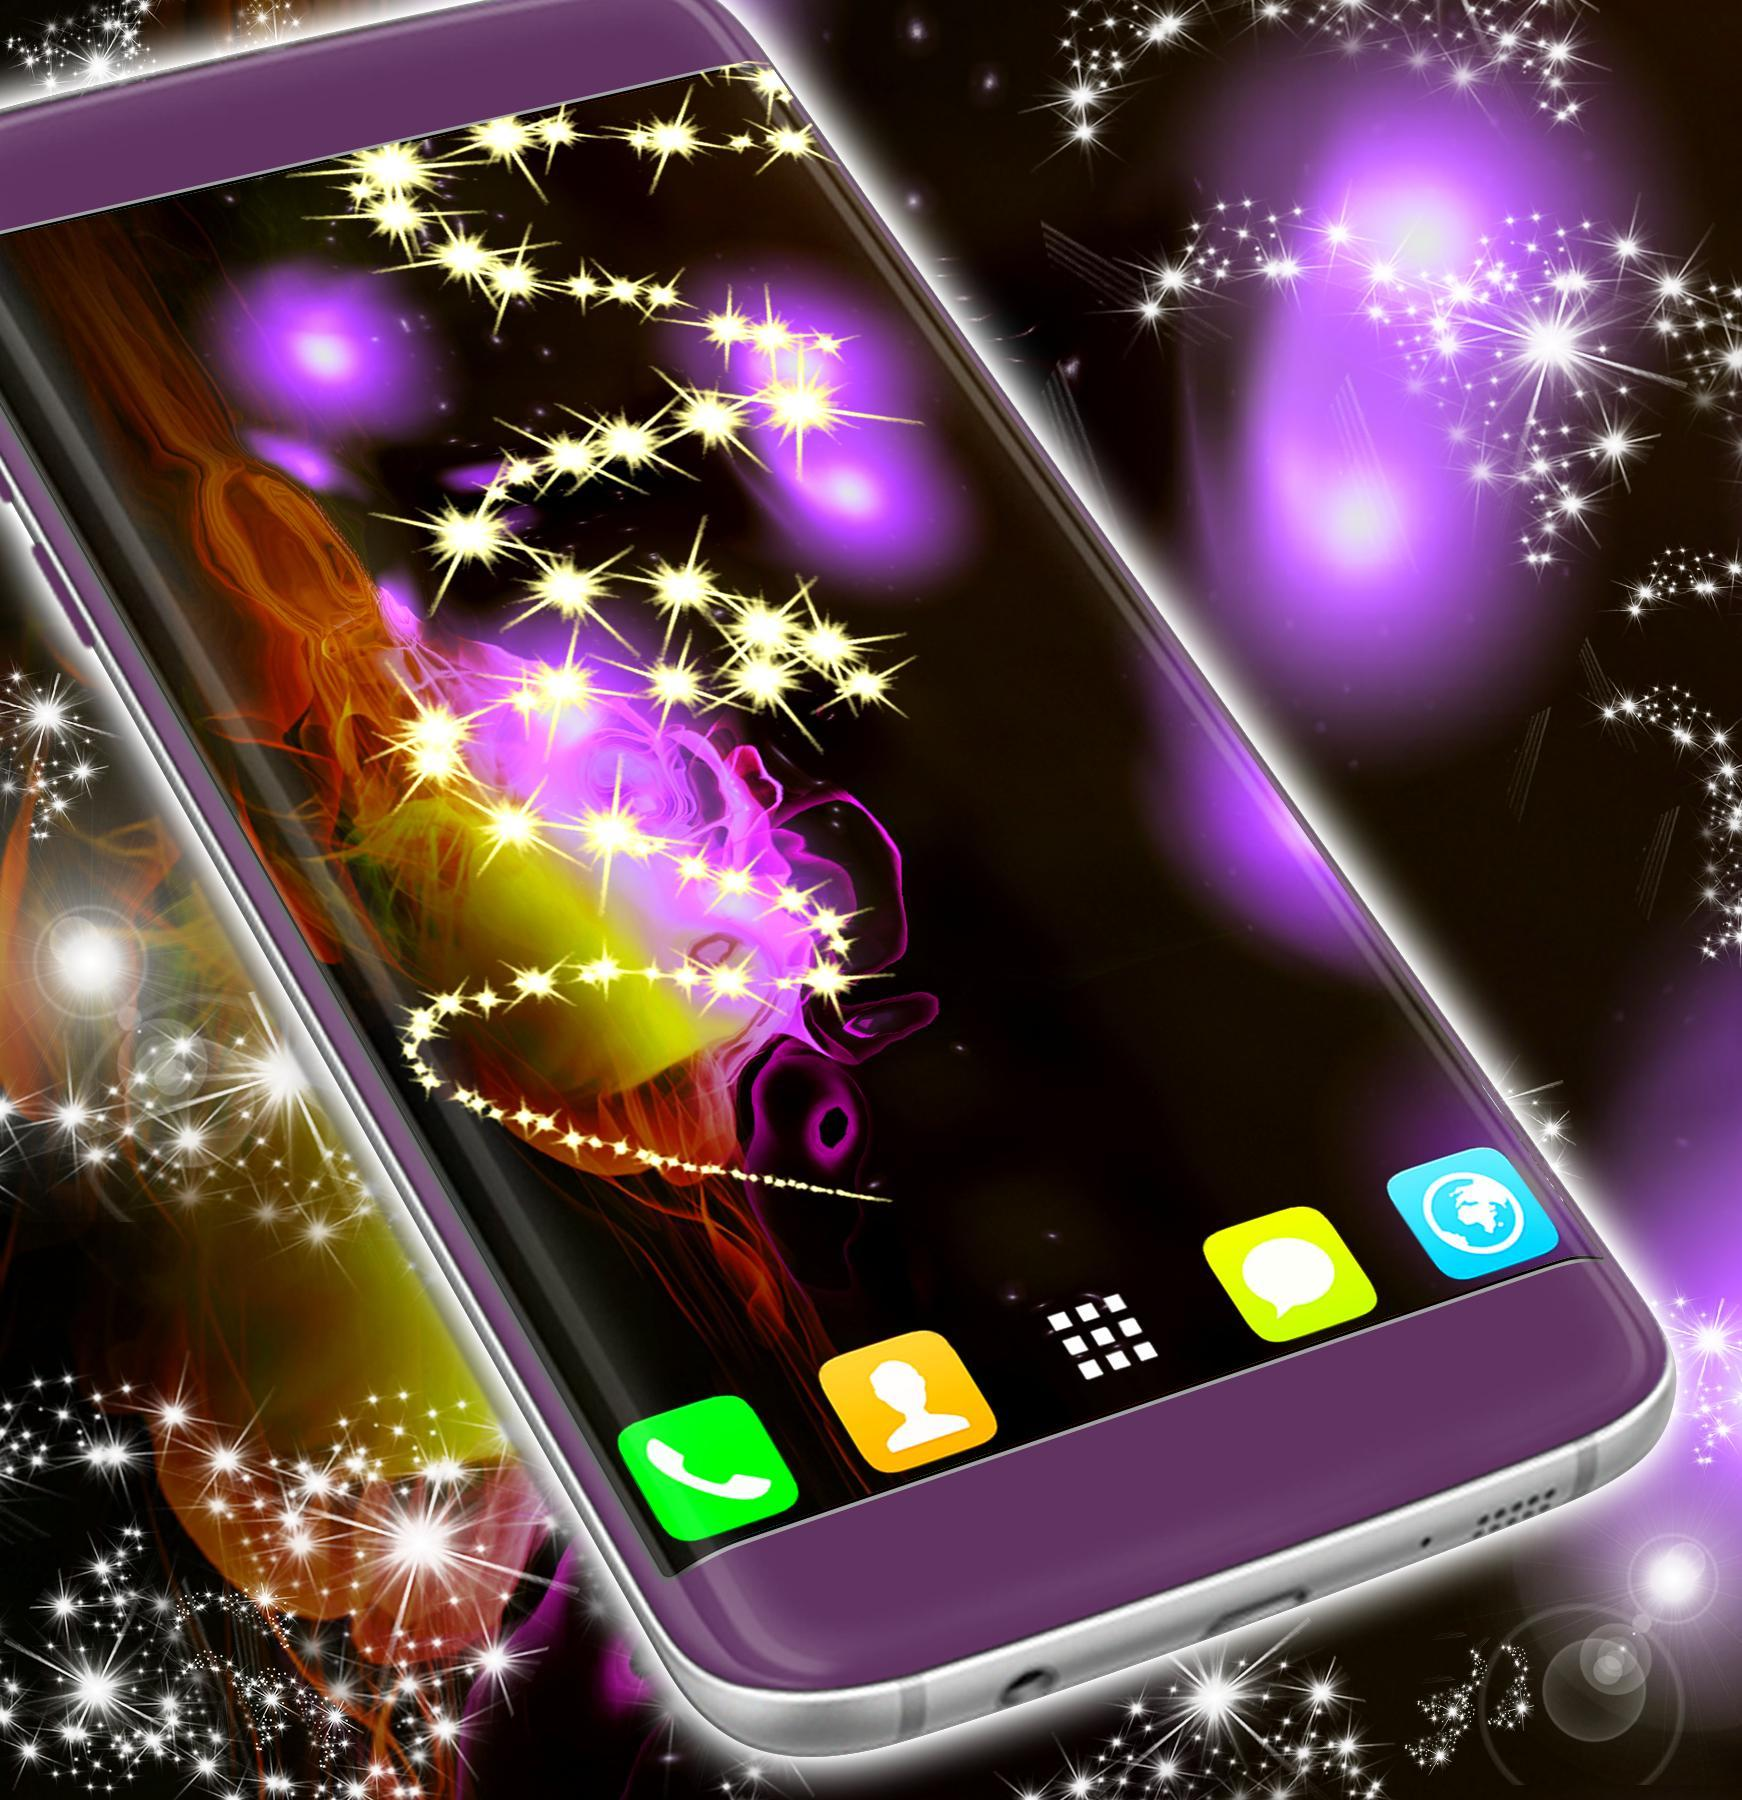 Hd 3d Live Wallpapers For Samsung Galaxy S6 Edge For Android Apk Download